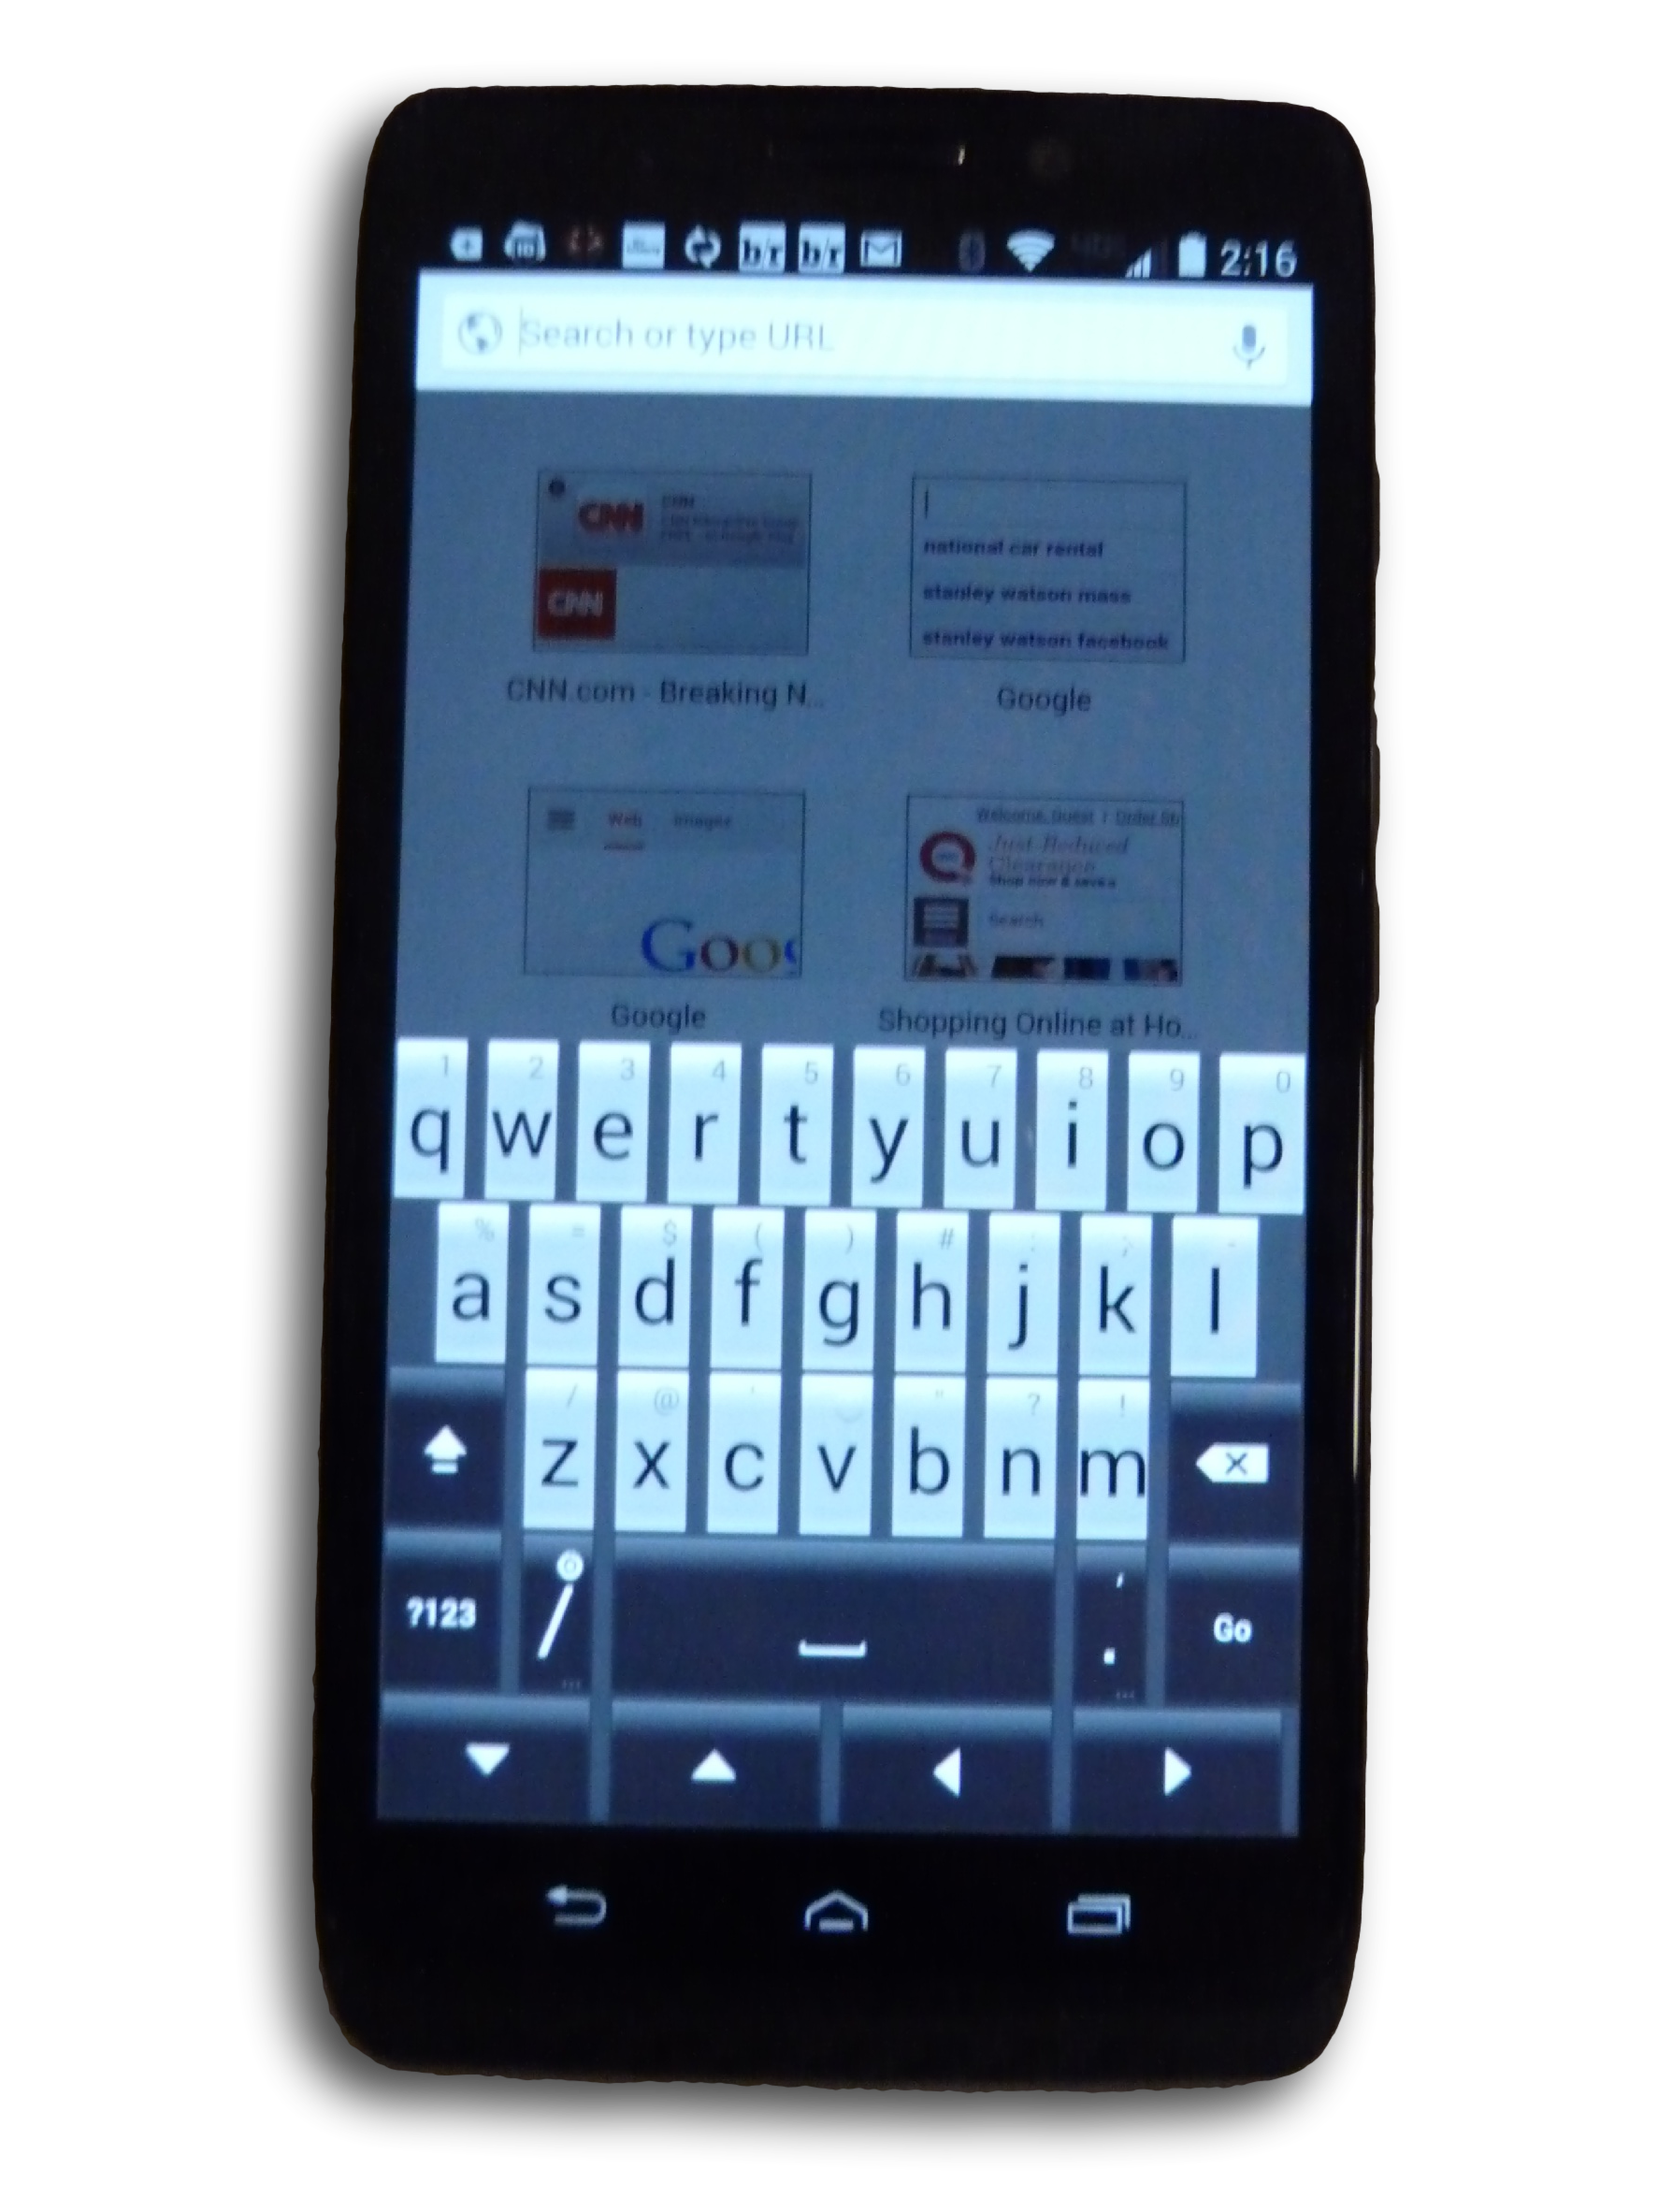 DroidMaxx wThumbsKbd1 clipped rev 1 Best Smartphone: Droid Maxx   The Power To Get Things Done